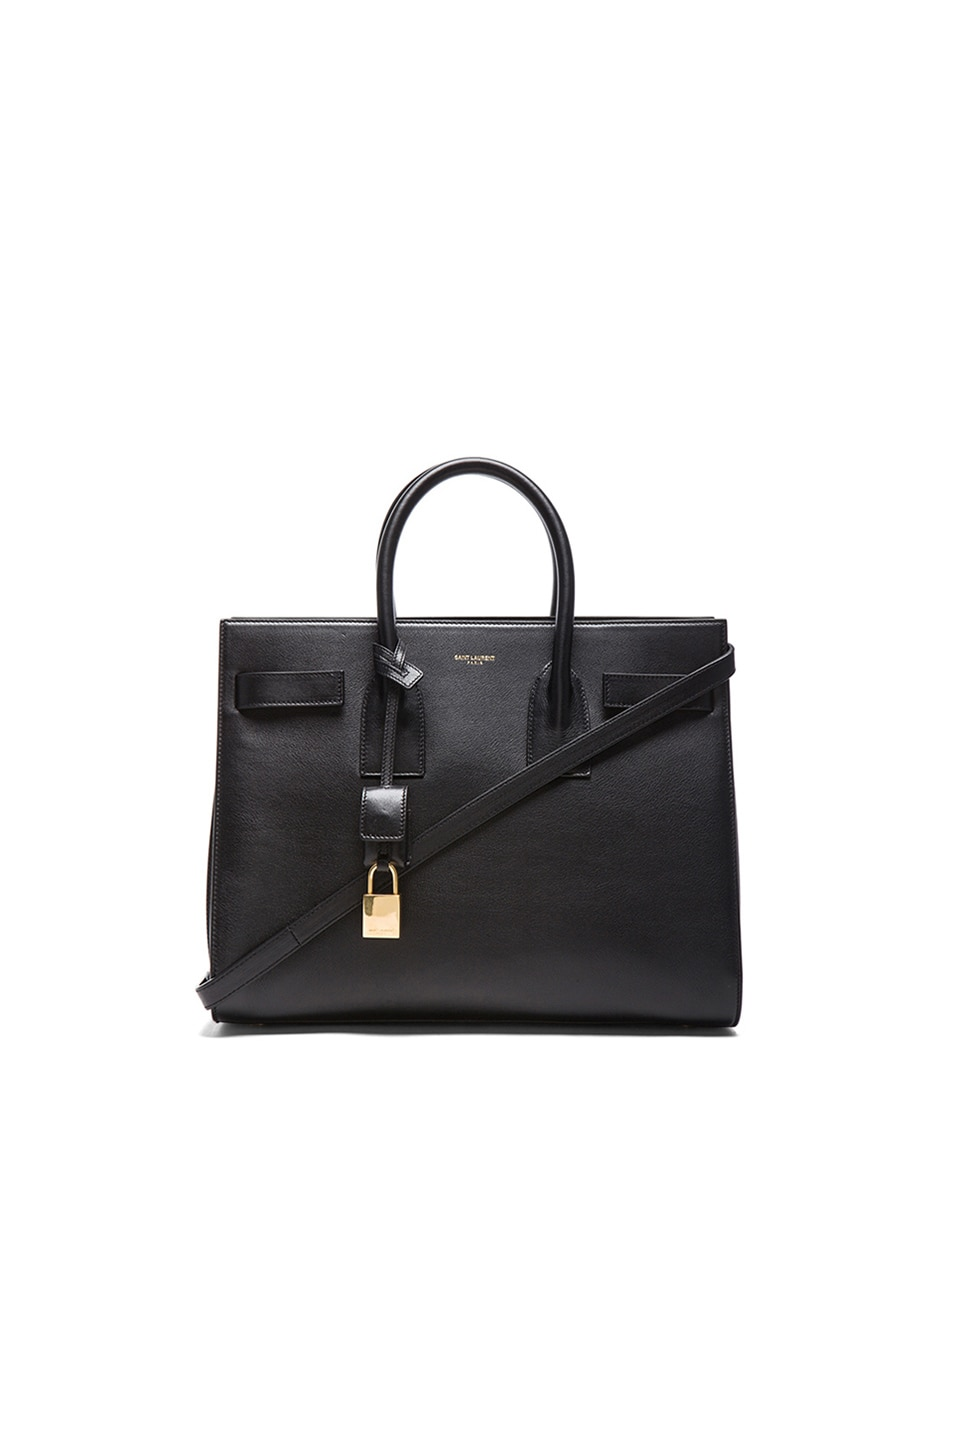 Image 1 of Saint Laurent Small Sac De Jour Carryall Bag in Black